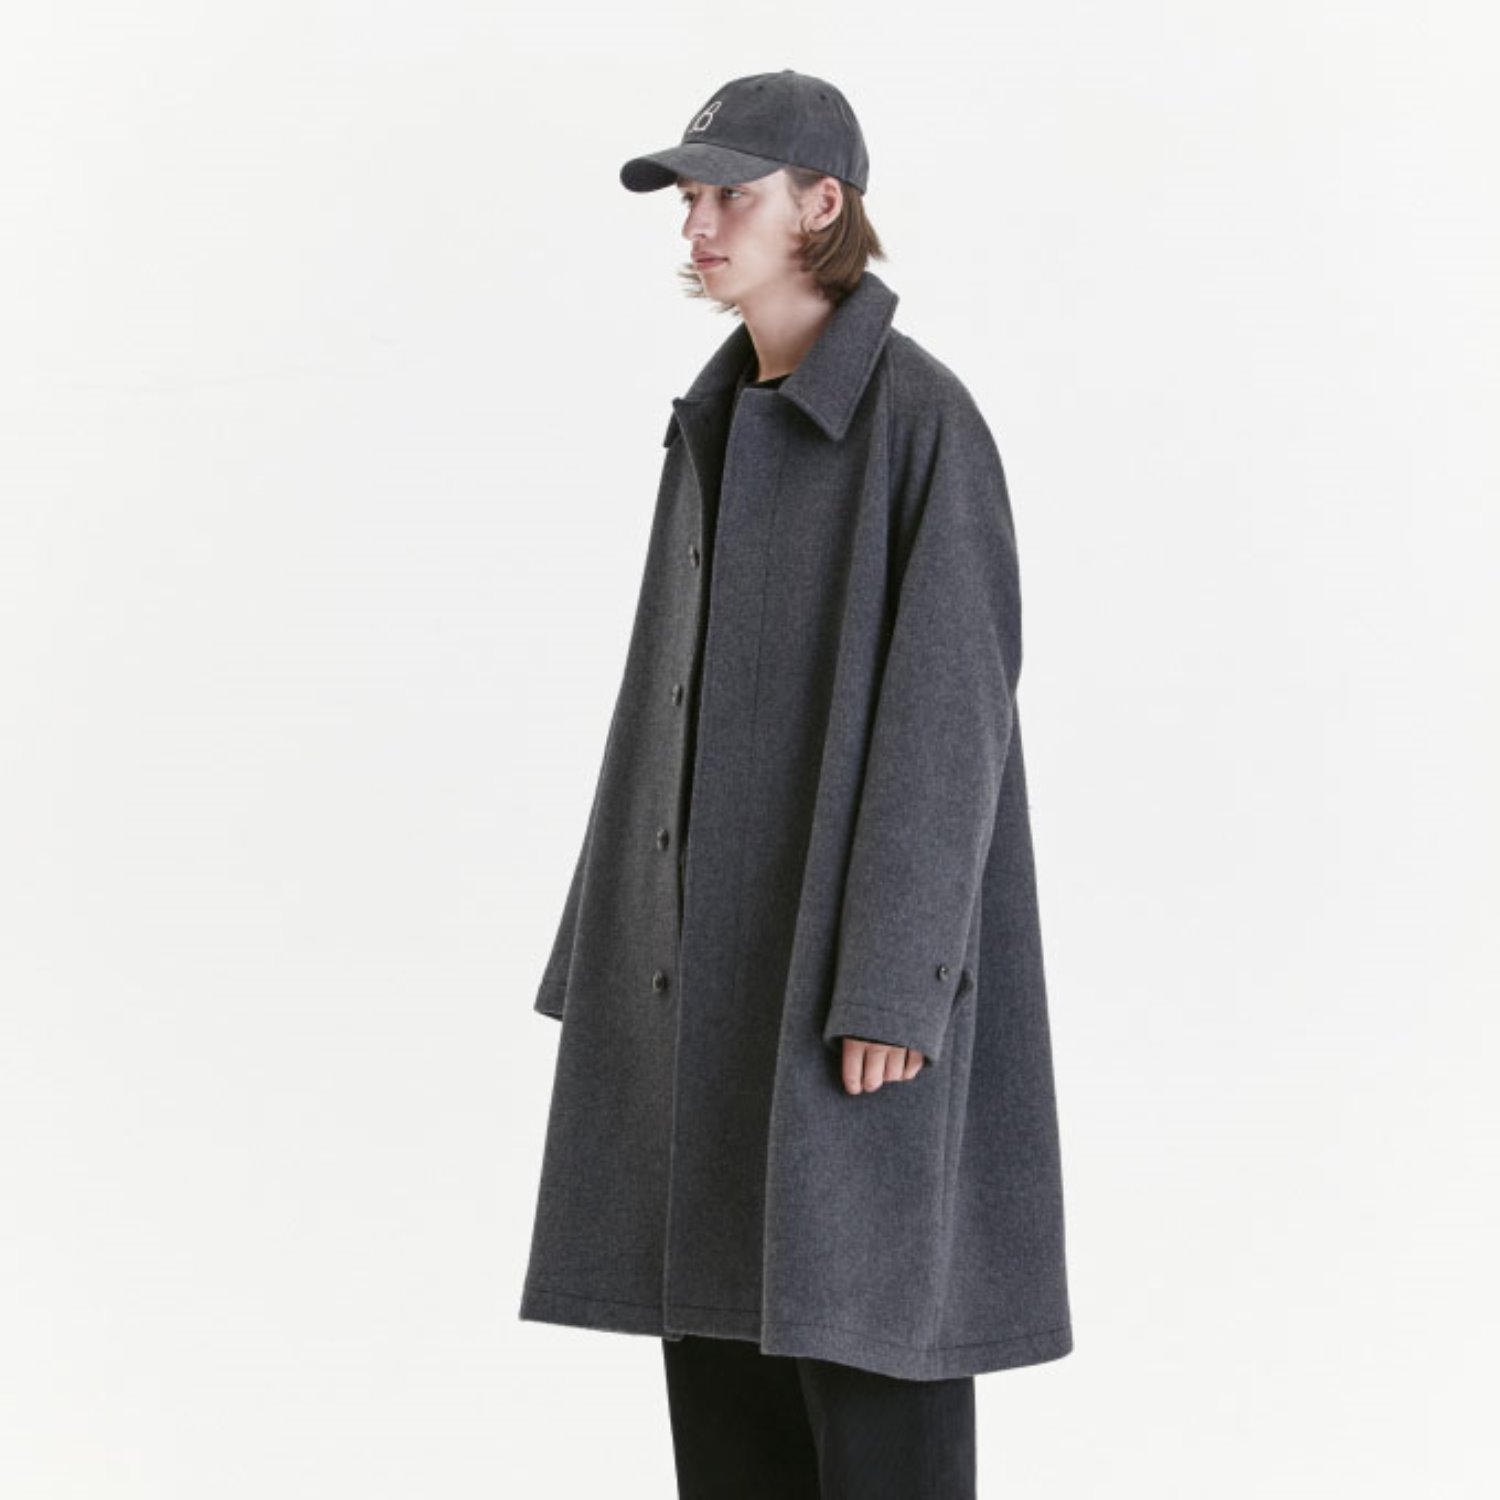 Balmacaan Coat (Gray)